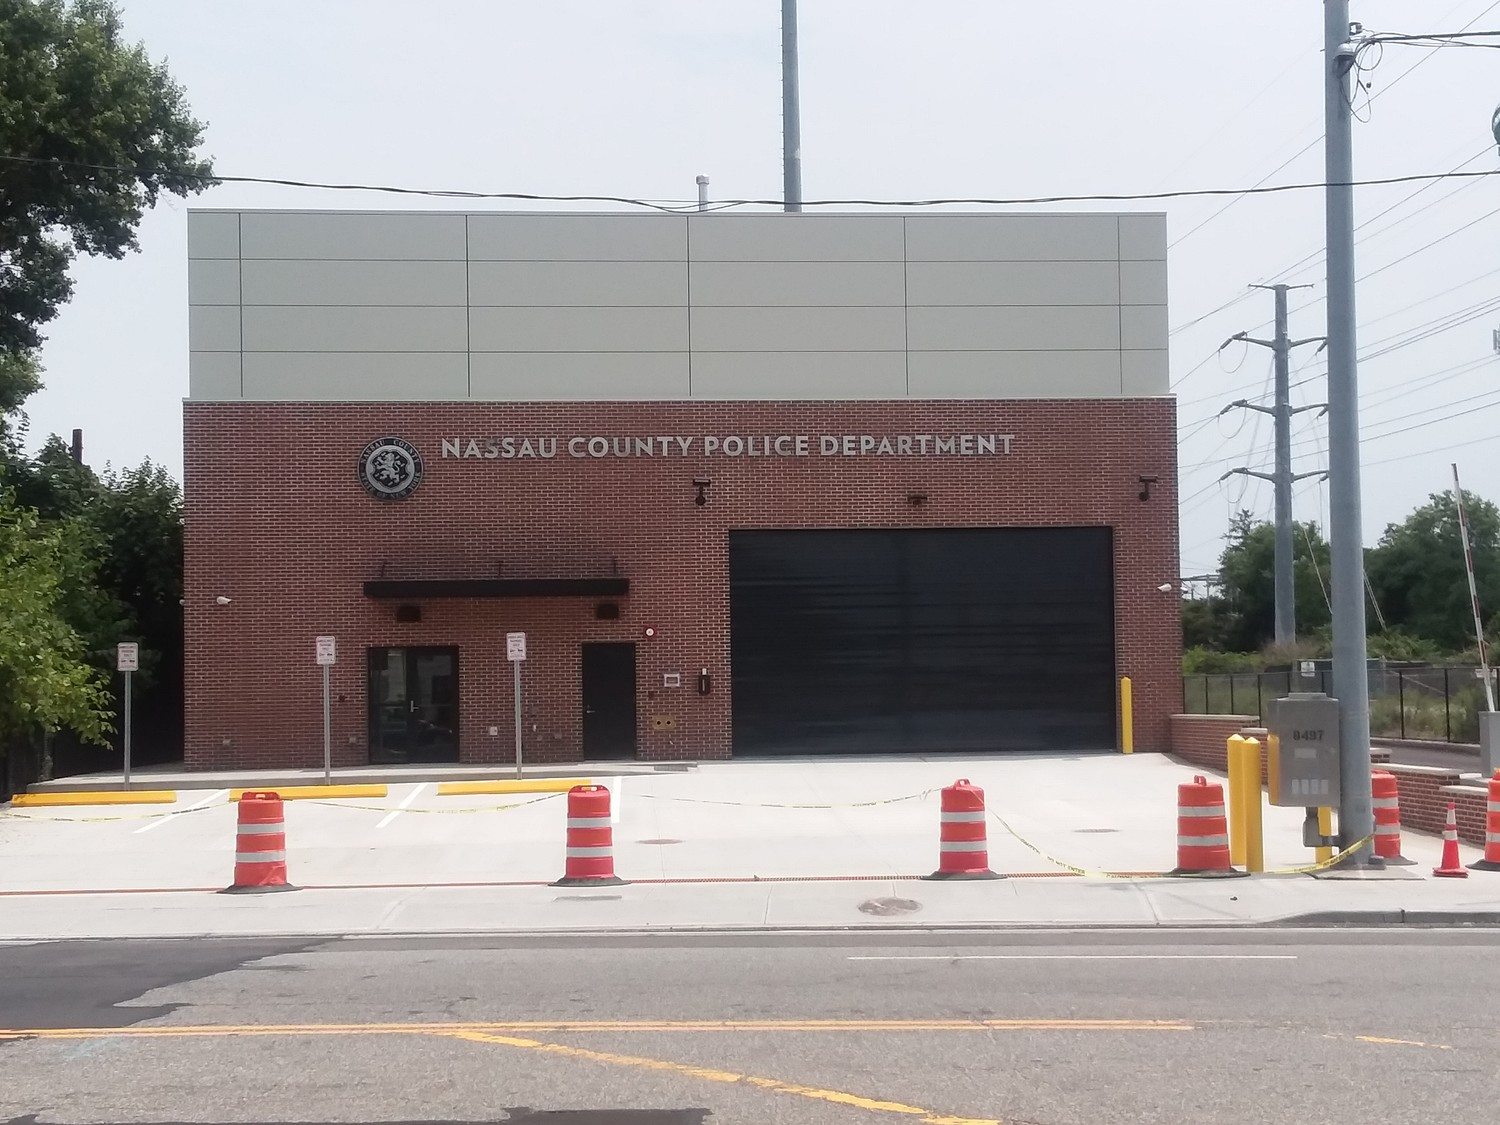 A new state-funded building houses the (8th) Community Policing Center. The new visitor's parking lot is not yet open as of July 4.